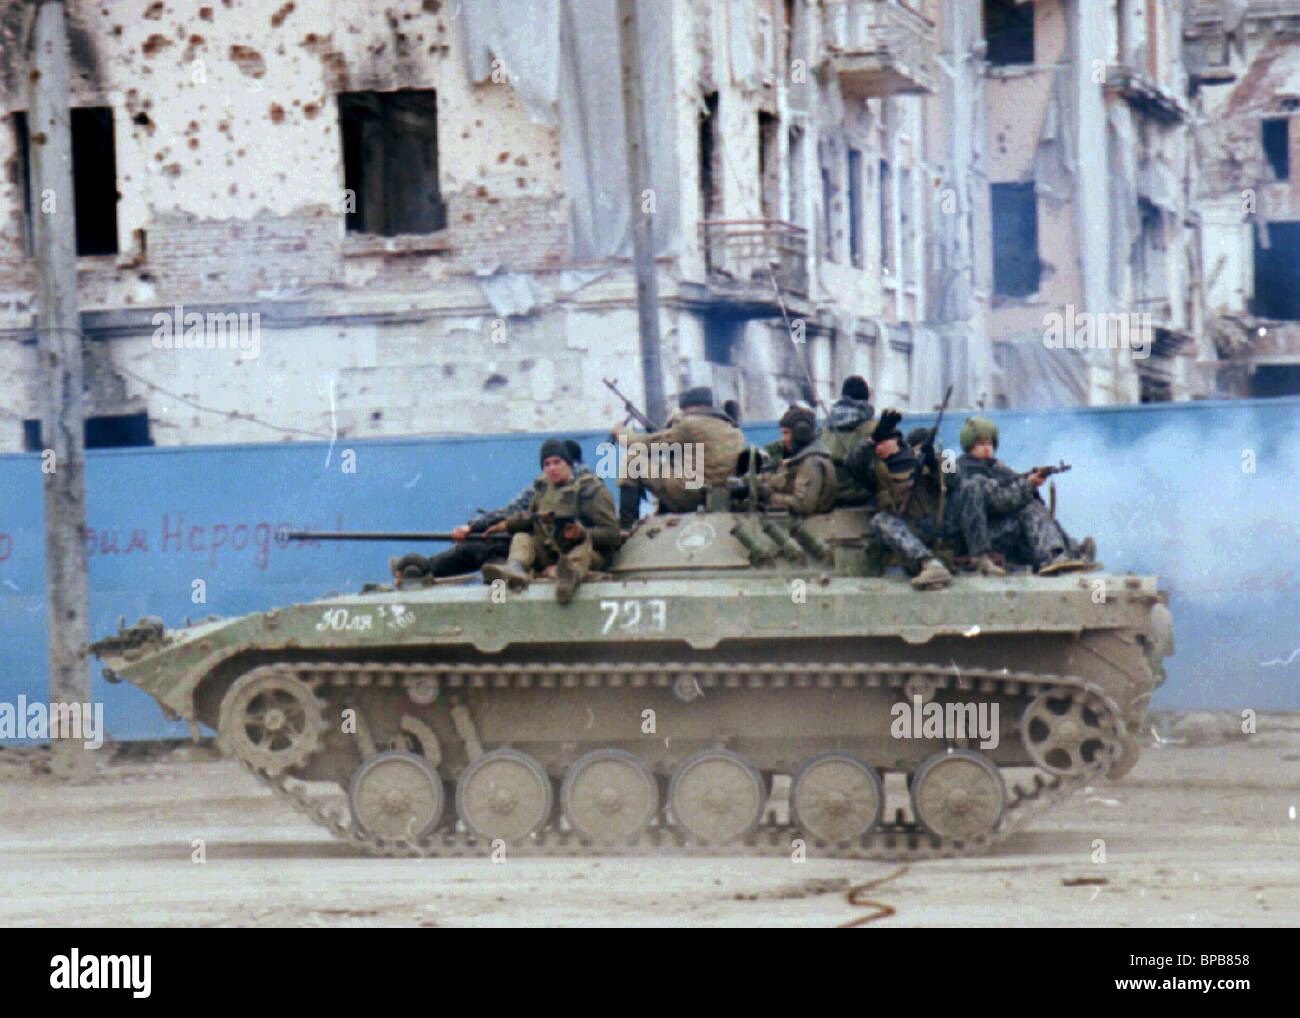 Situation in Grozny - Stock Image